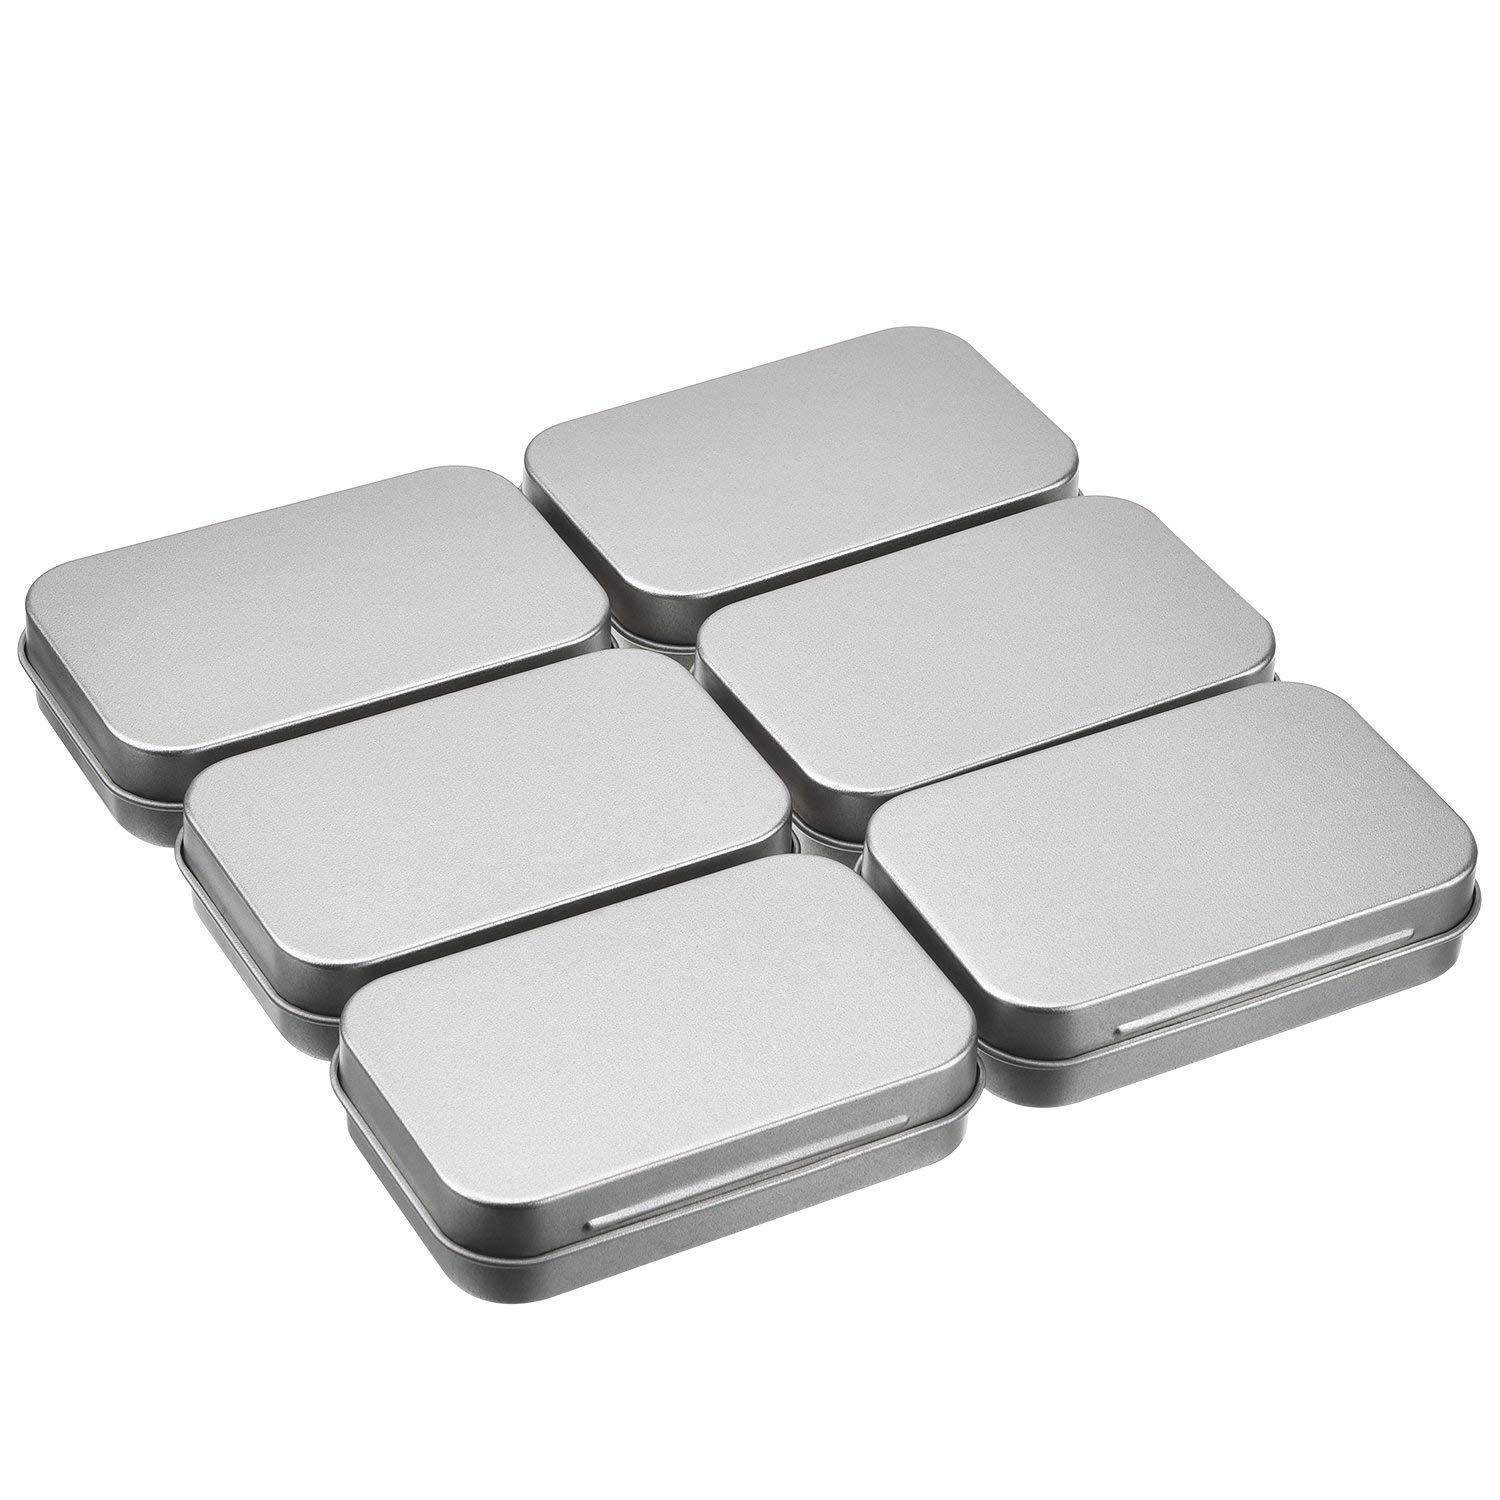 Lvcky 6 Pack 3.75 x 2.45 x 0.8 inch Tins Container Rectangular Hinged Containers Small Storage Kit Silver Metal Empty Mini Portable Tin Box, Home Organizer